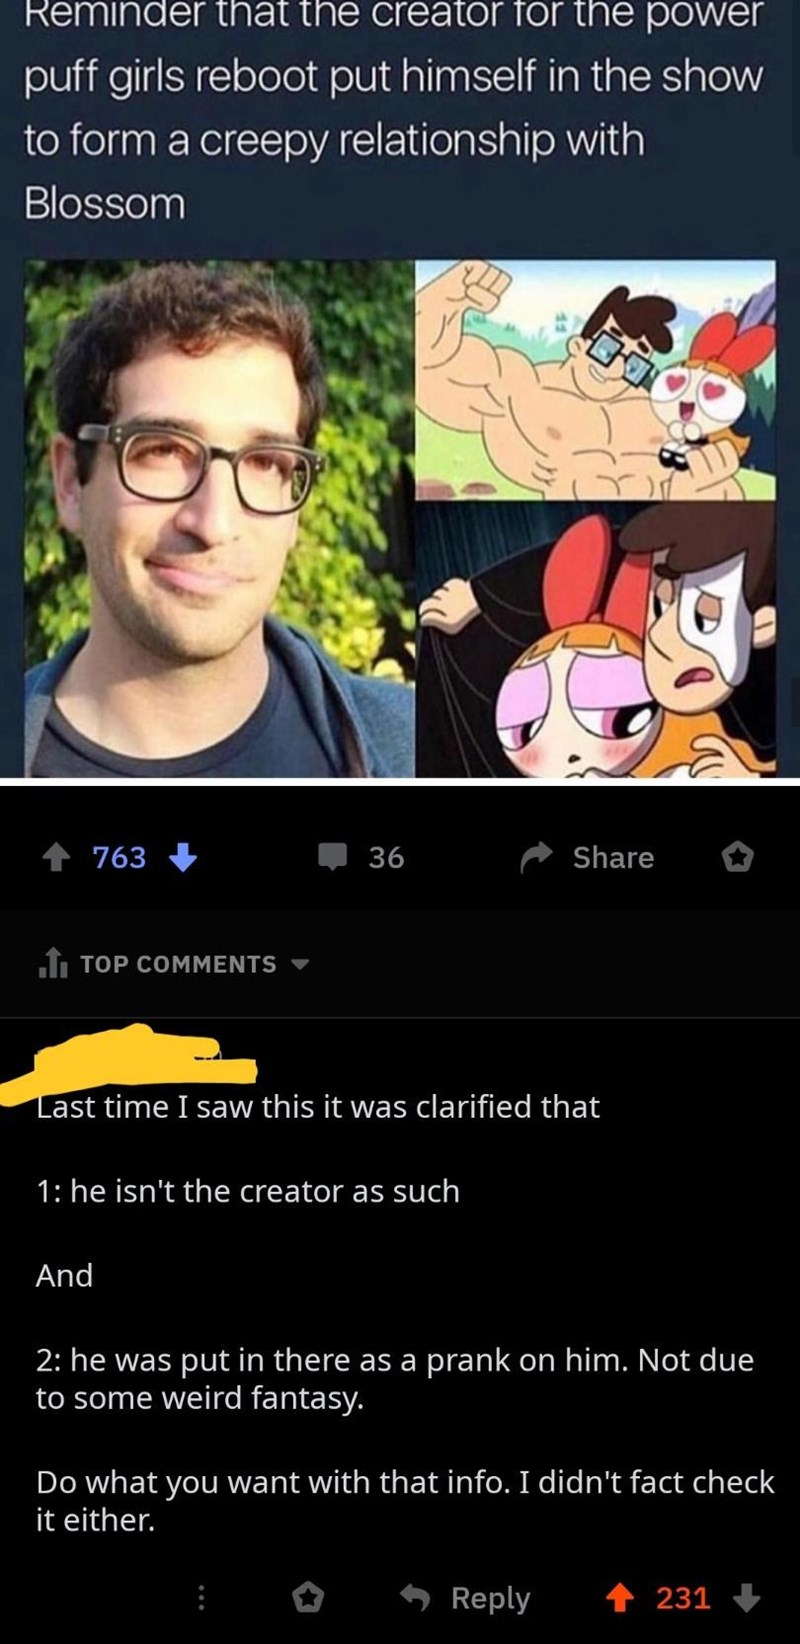 quit your bullshit - Cartoon - Reminder that the creator for the power puff girls reboot put himself in the show to form a creepy relationship with Blossom 36 Share 763 1 TOP COMMENTS Last time I saw this it was clarified that 1: he isn't the creator as such And 2: he was put in there as a prank on him. Not due to some weird fantasy. Do what you want with that info. I didn't fact check it either. Reply 231